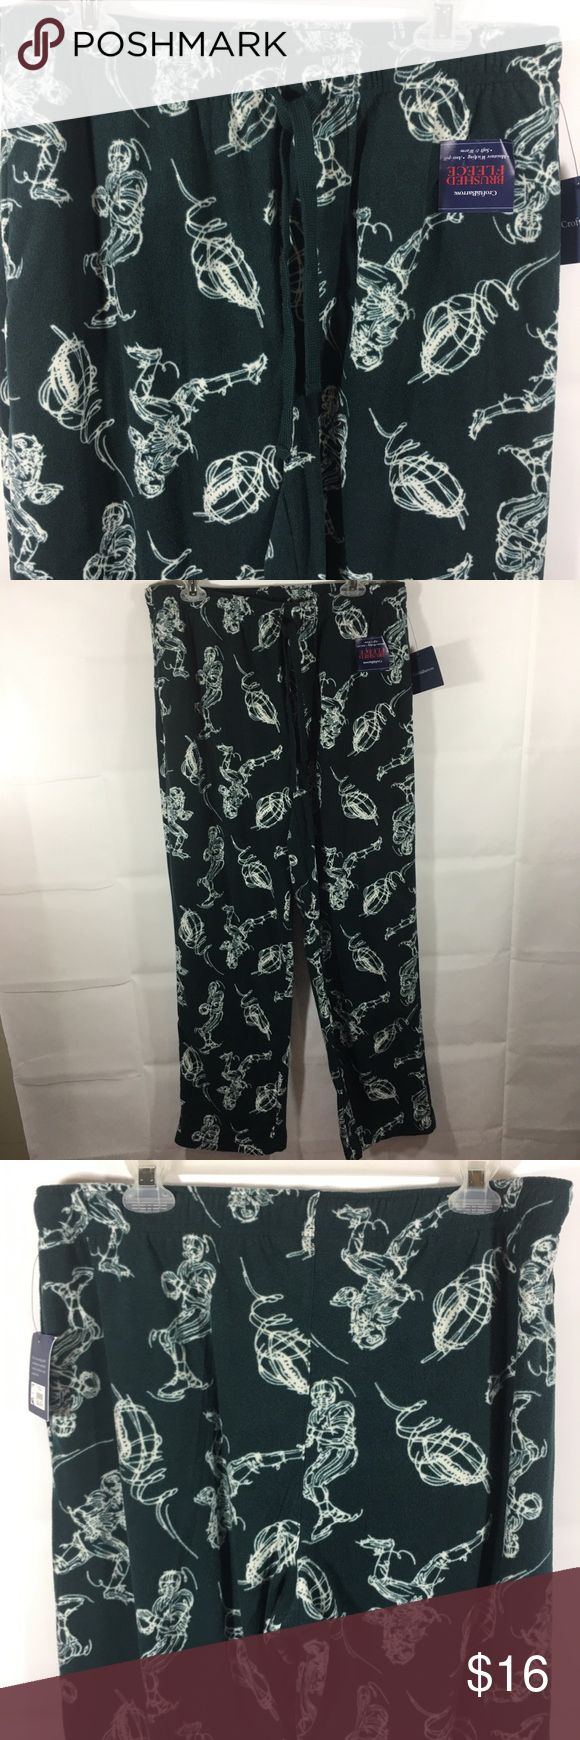 Croft & Barrow Football Sleep Pants Medium New Croft & Barrow men's sleep pants/lounge pants size medium new with tags retail price $24.00 green with footballs and football players brushed fleece, open fly, drawstring waist stretch waist 31 inch inseam croft & barrow Other